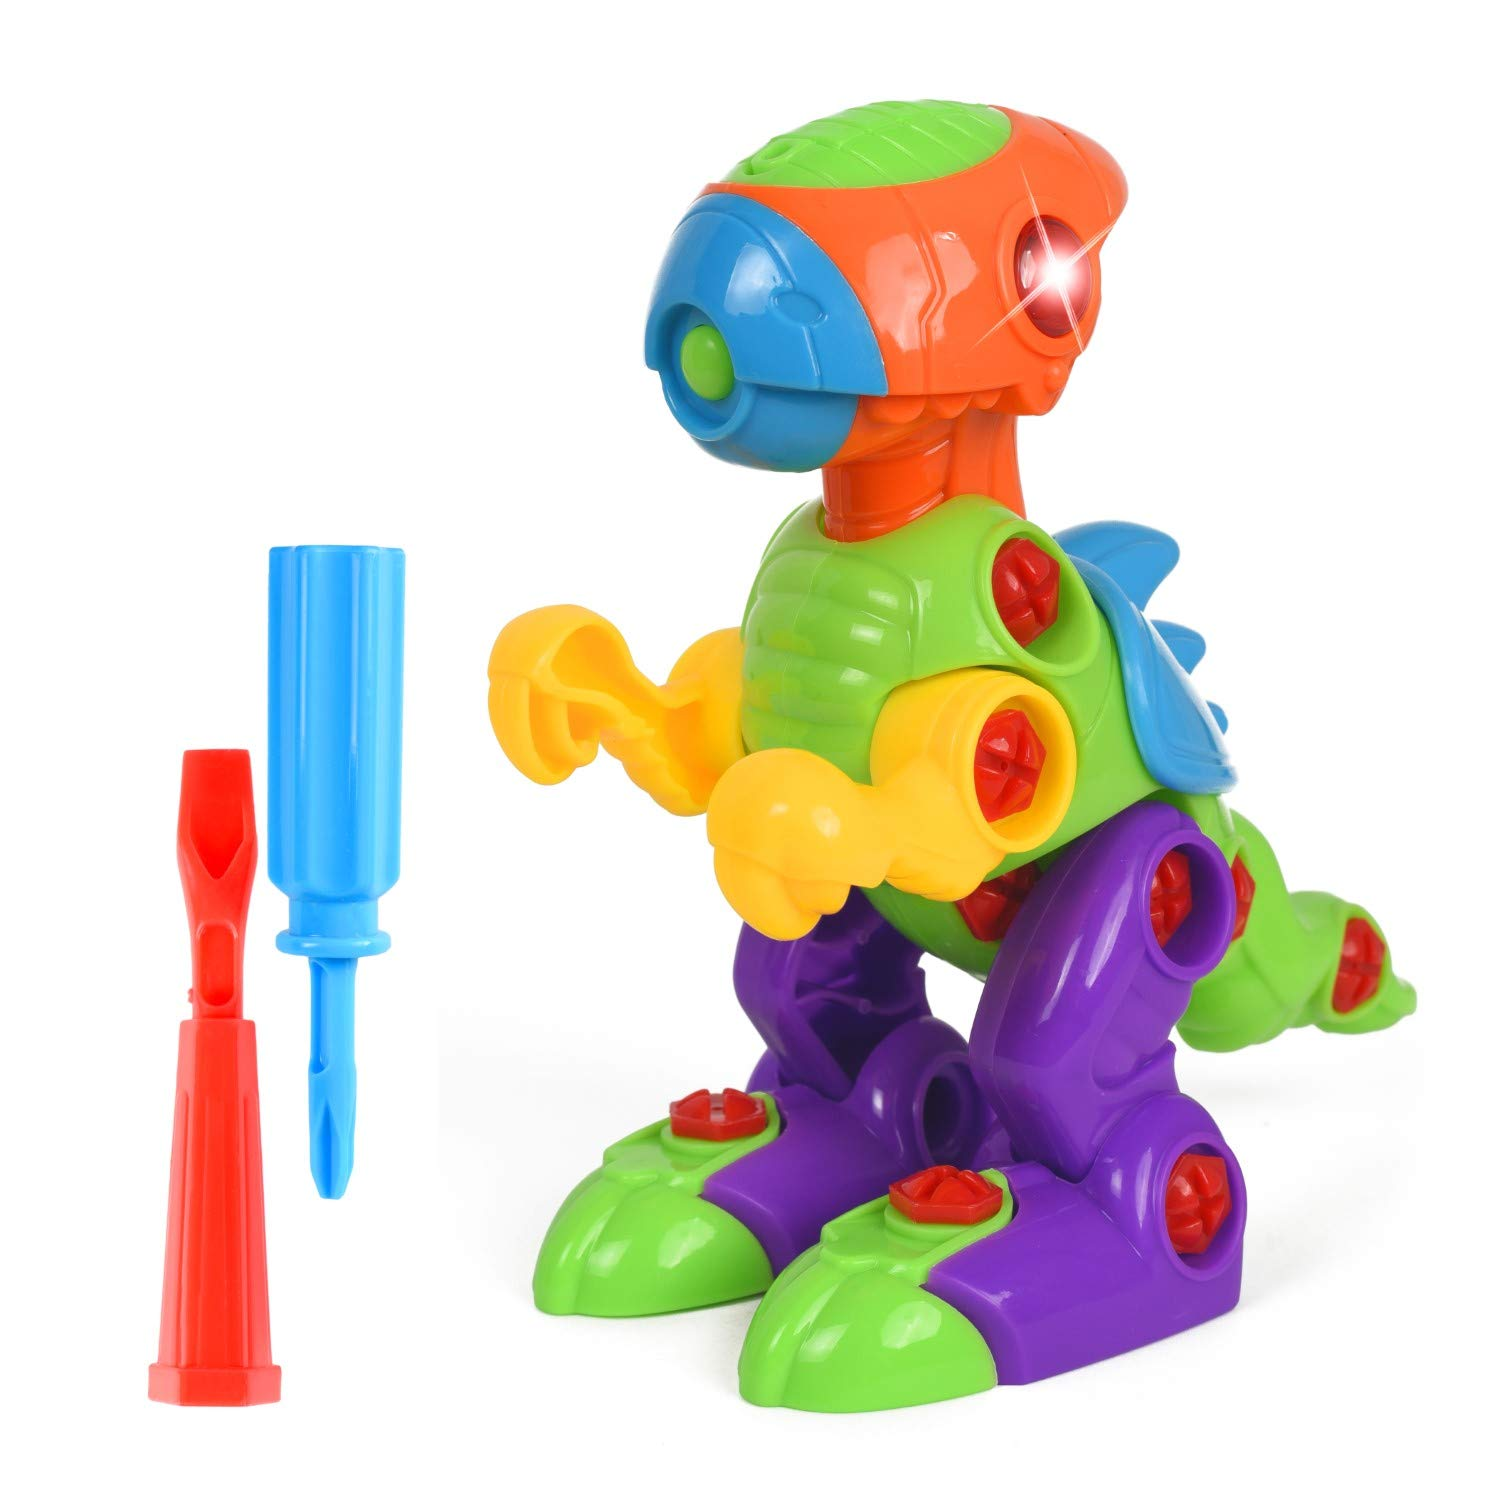 074105b5a15b WolVol 18-Piece Take-A-Part Building Dino Dinosaur - Toddler Assembly STEM  Toy - Lights & Music - Take Apart for Boys & Girls - Screwdriver Included -  ...